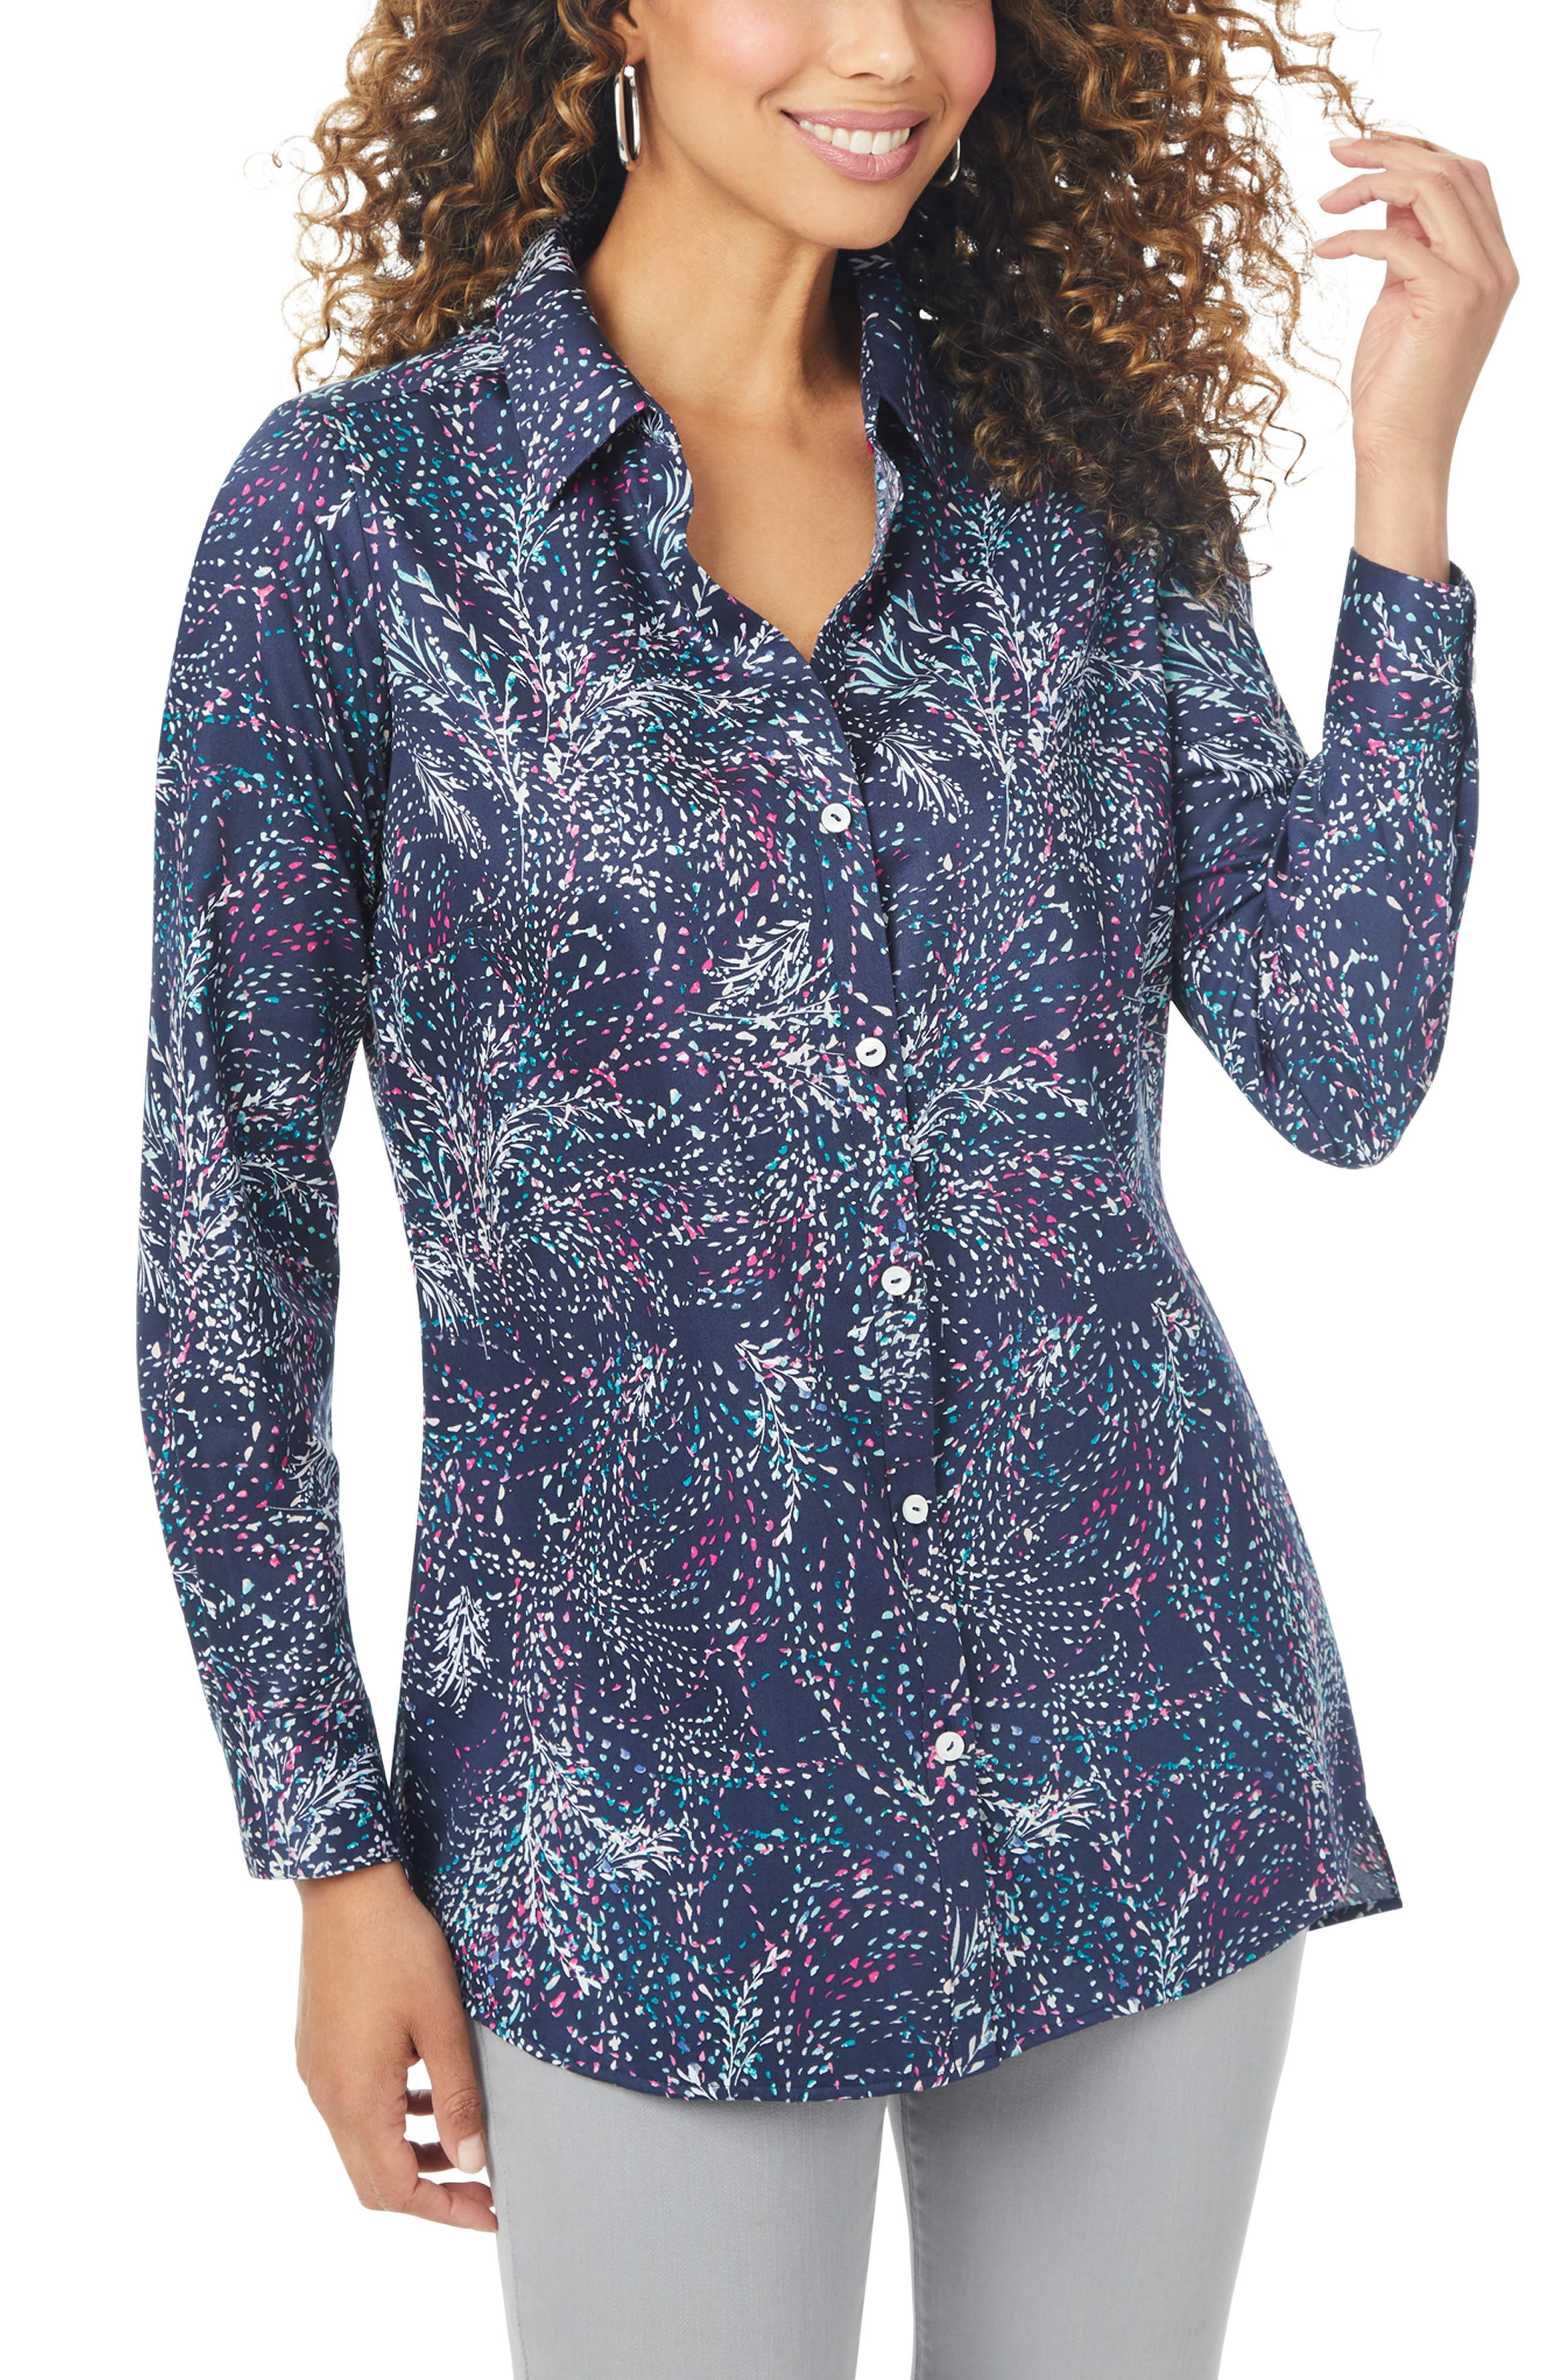 Isadora Swirling Leaves Non-Iron Cotton Tunic